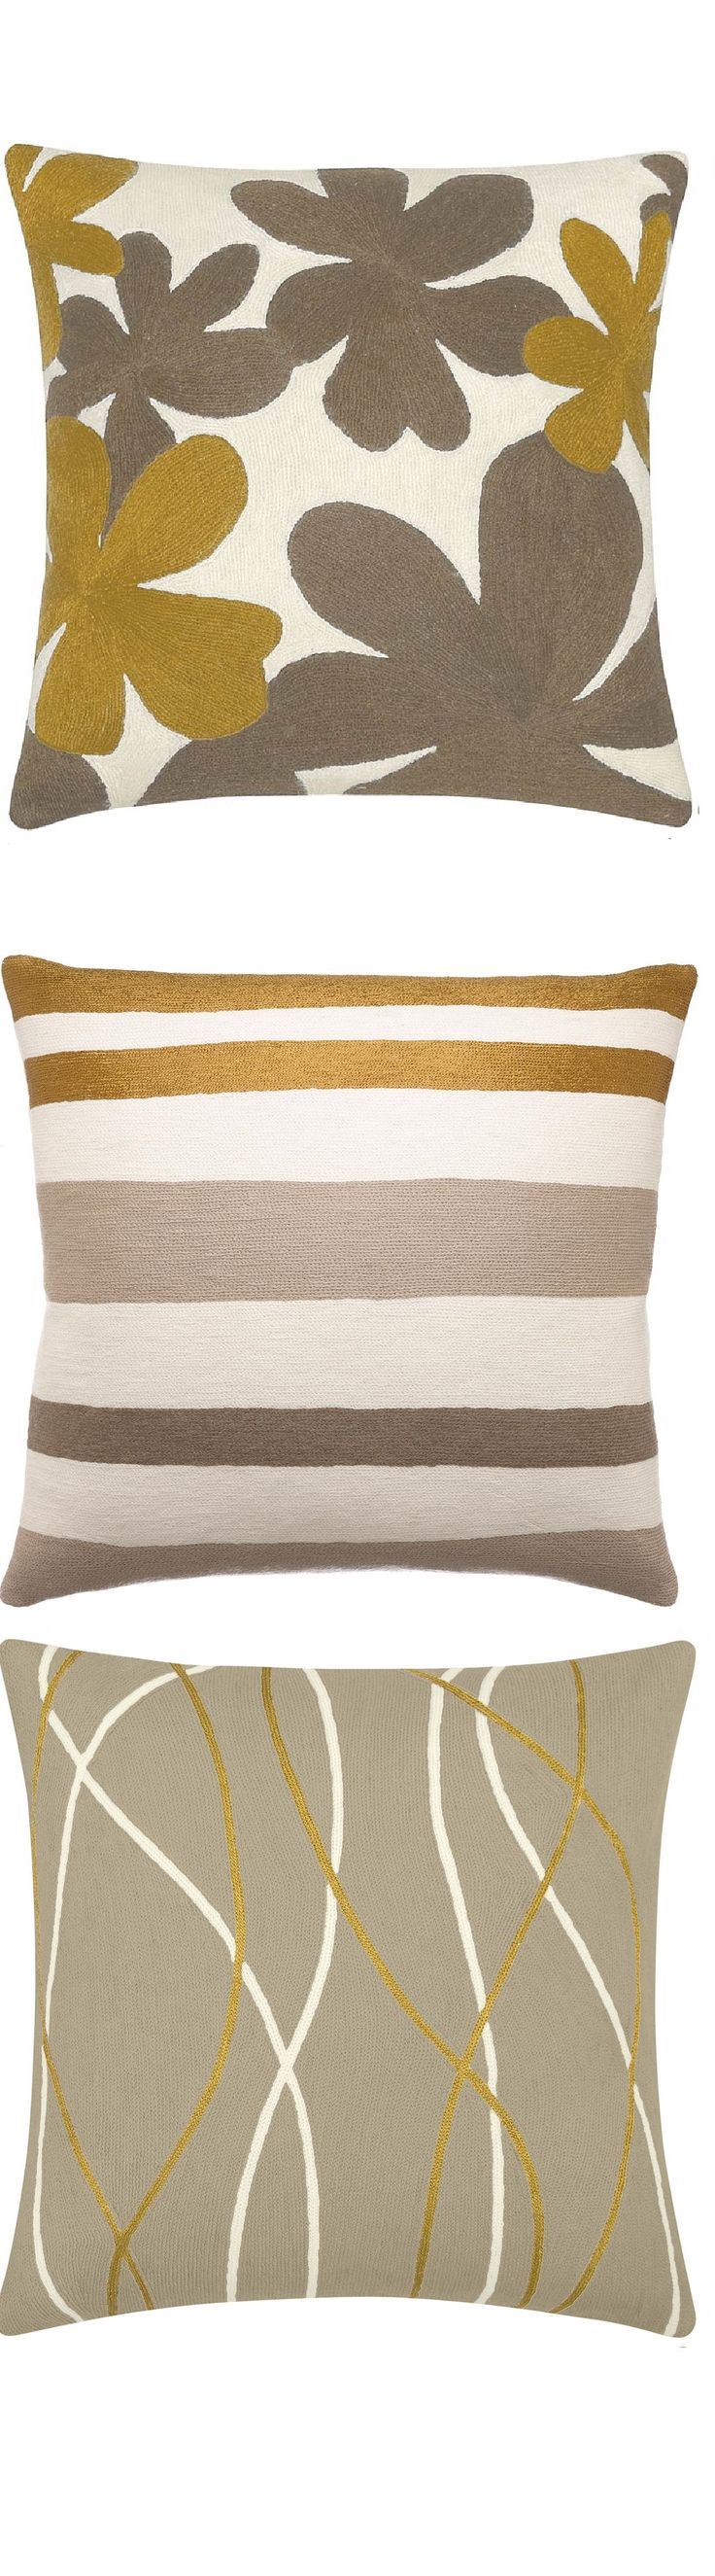 """""""gray pillows"""" """"gray throw pillows"""" """"gray modern pillows"""" By InStyle-Decor.com Hollywood, gray couch pillow, gray couch pillows, gray pillow cases, gray pillows shams, gray pillow covers, gray decorative pillows, decorative gray pillows, modern gray pillow, modern gray pillows, contemporary gray pillow, contemporary gray pillows, decorative pillows, decorative pillows for sofa, decorative pillows for bed, throw pillows, throw pillows for sofa, pillow ideas, from $200"""